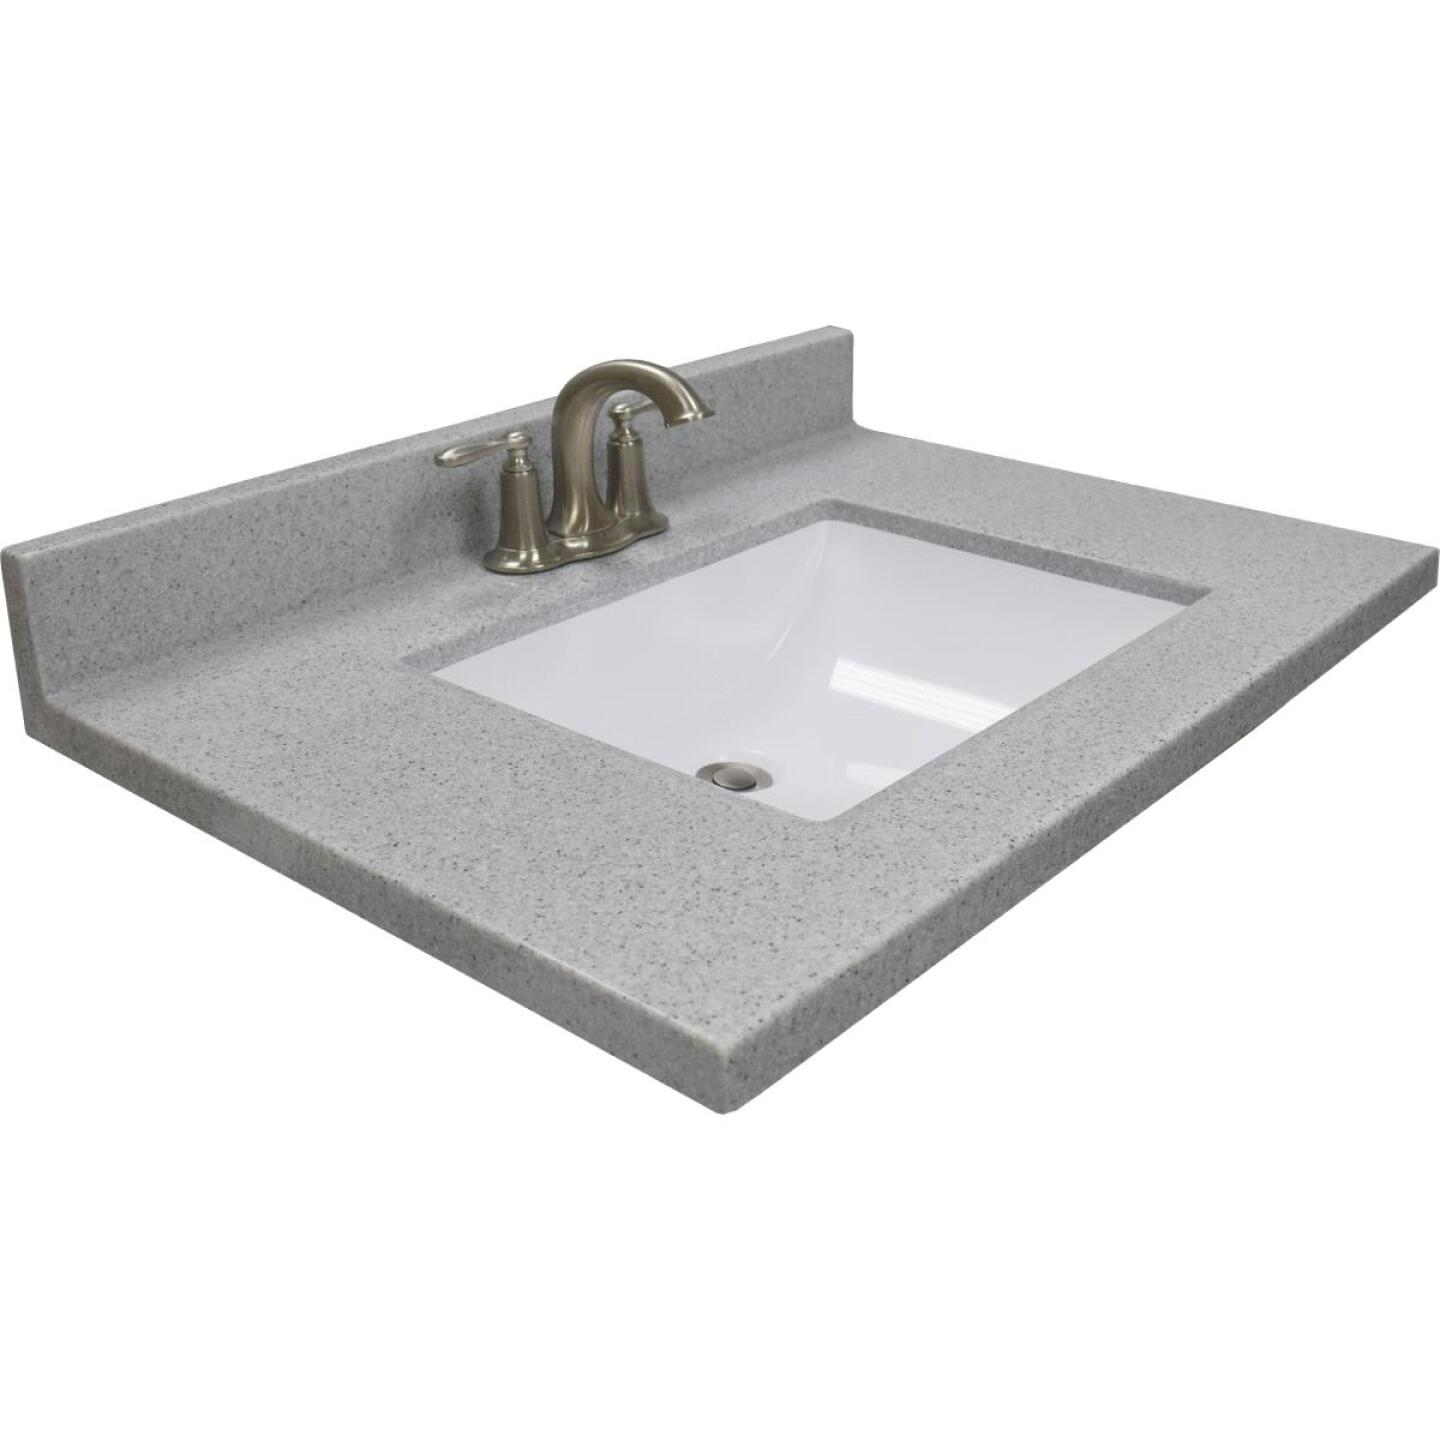 Modular Vanity Tops 31 In. W x 22 In. D Pewter Cultured Marble Vanity Top with Rectangular Wave Bowl Image 1